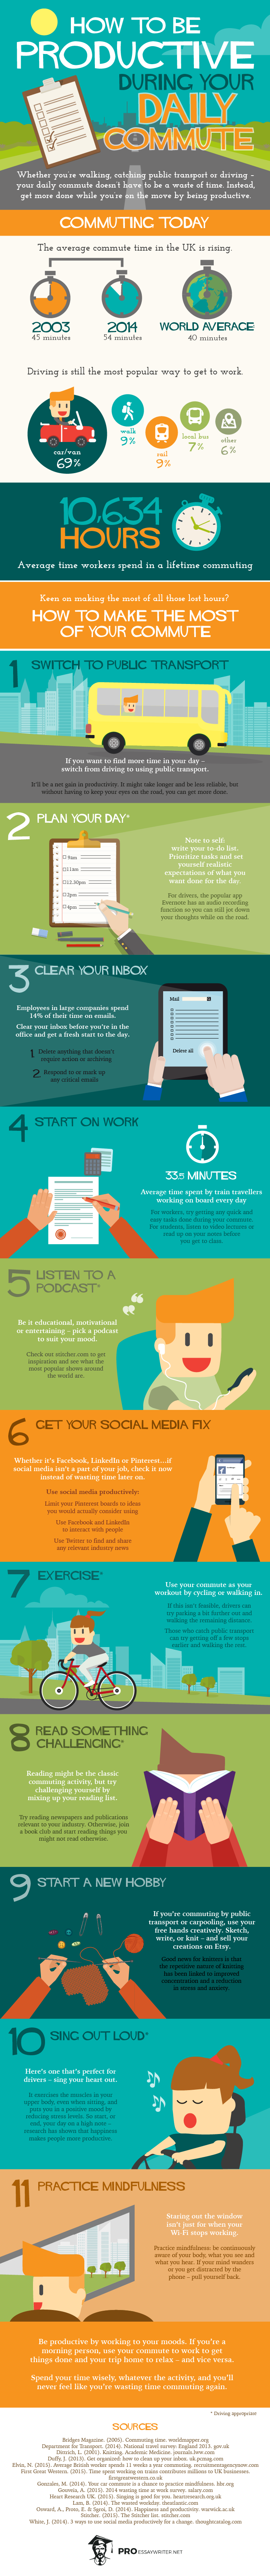 how-to-be-productive-during-your-daily-commute-v2